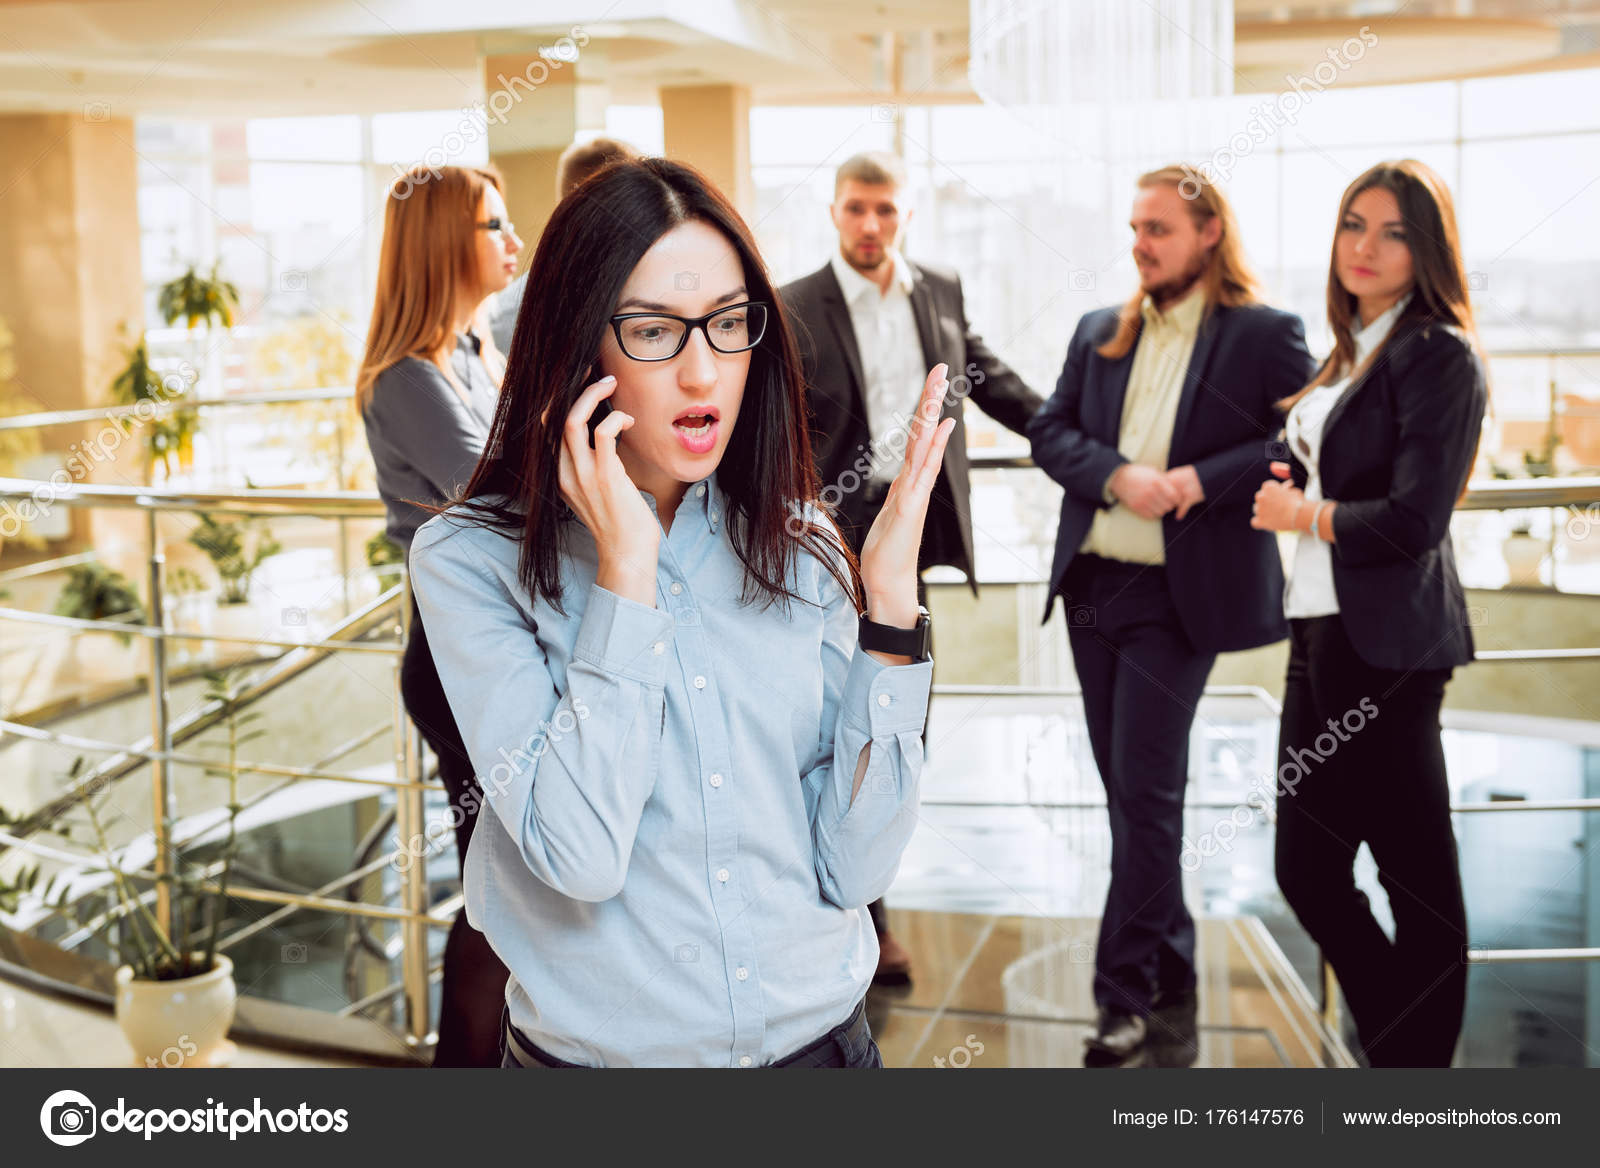 business woman talking phone meeting colleagues office routine